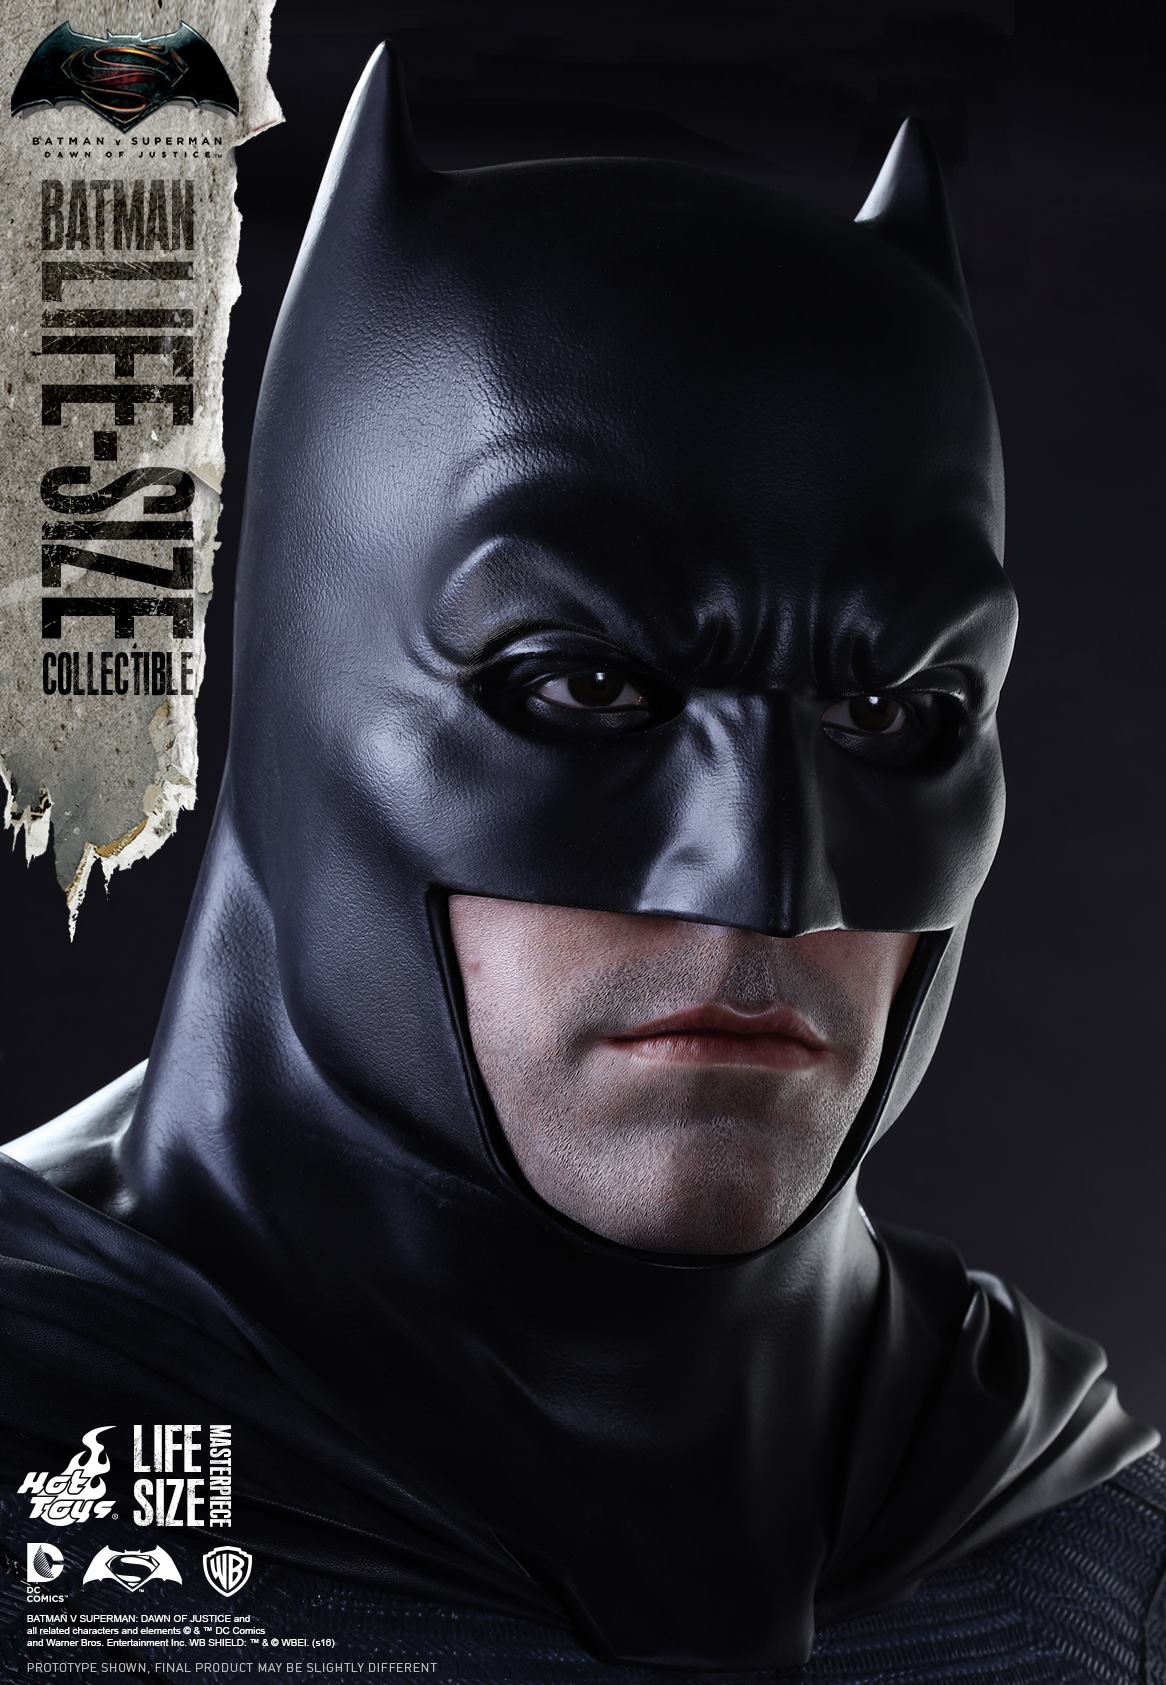 batman v superman life size batman statue by hot toys. Black Bedroom Furniture Sets. Home Design Ideas